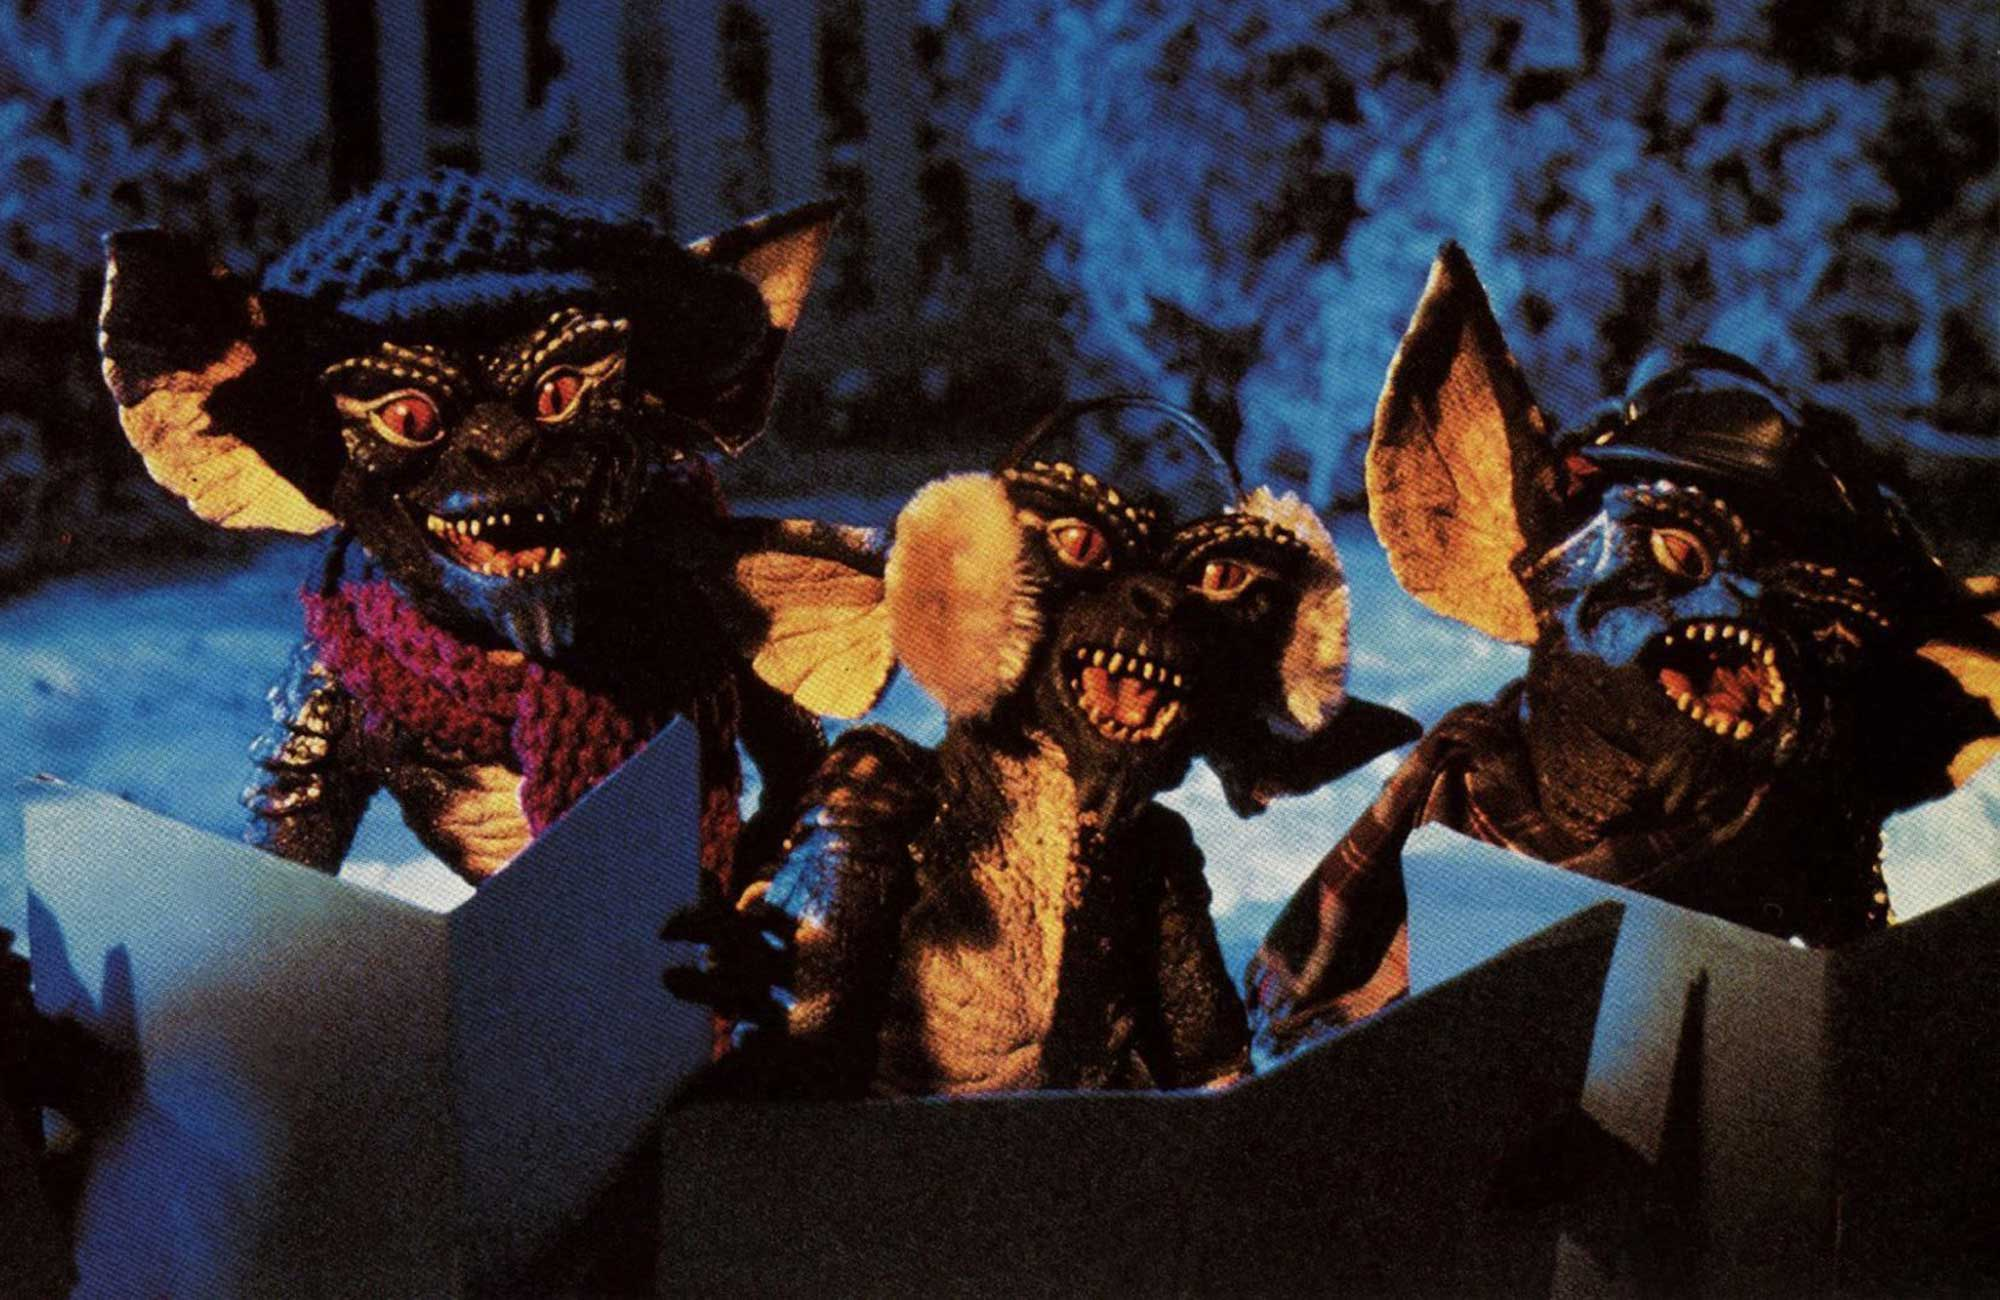 Gremlins and the Macabre World of Fairy Tales